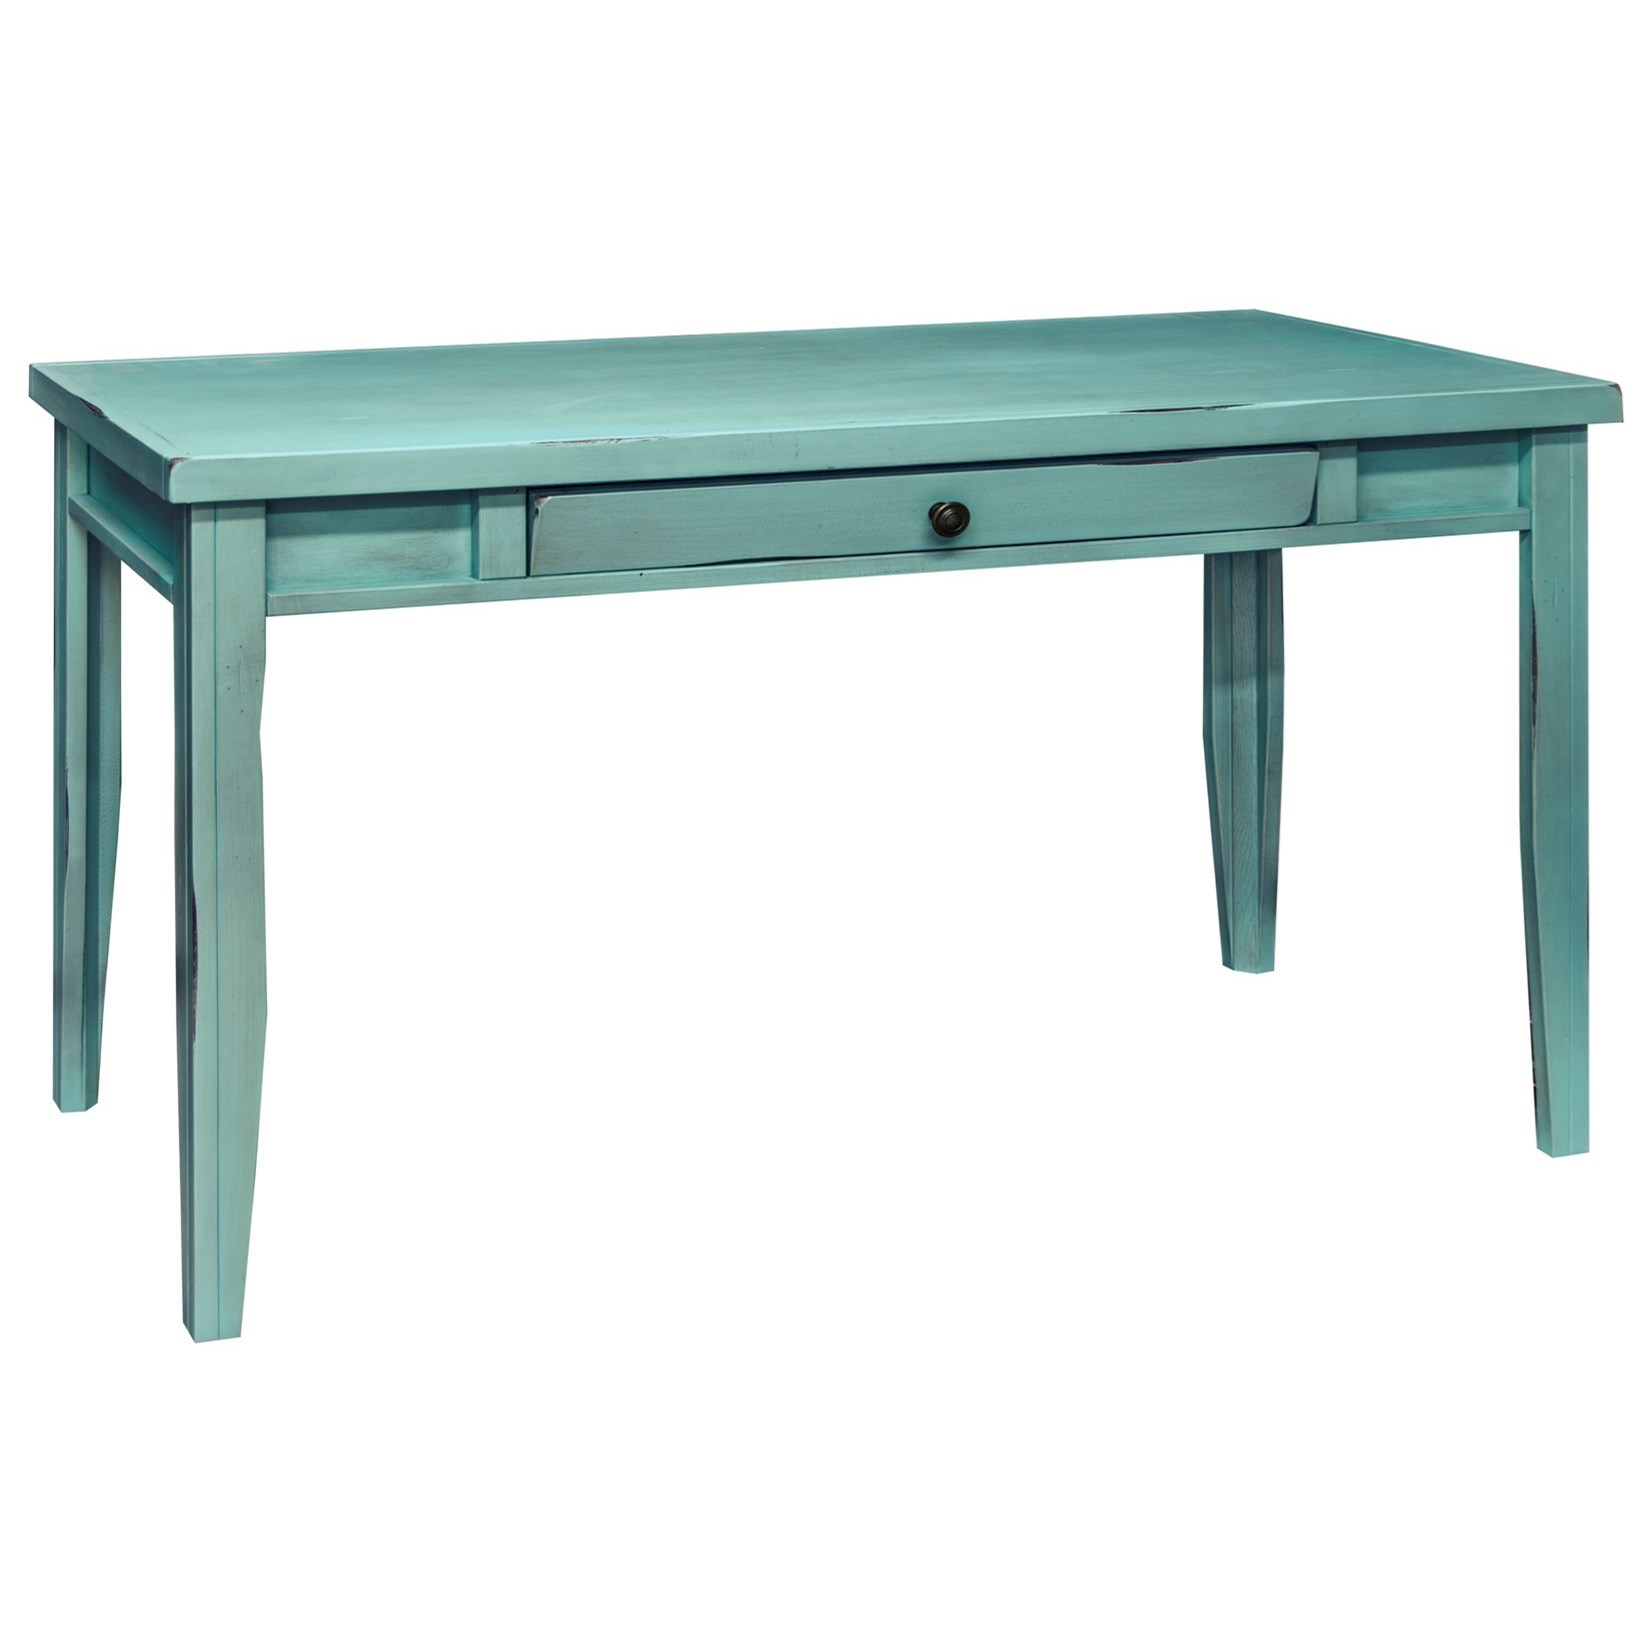 "Legends Furniture Calistoga Collection Calistoga Blue 48"" Writing Table - Item Number: CA6210-RBL"